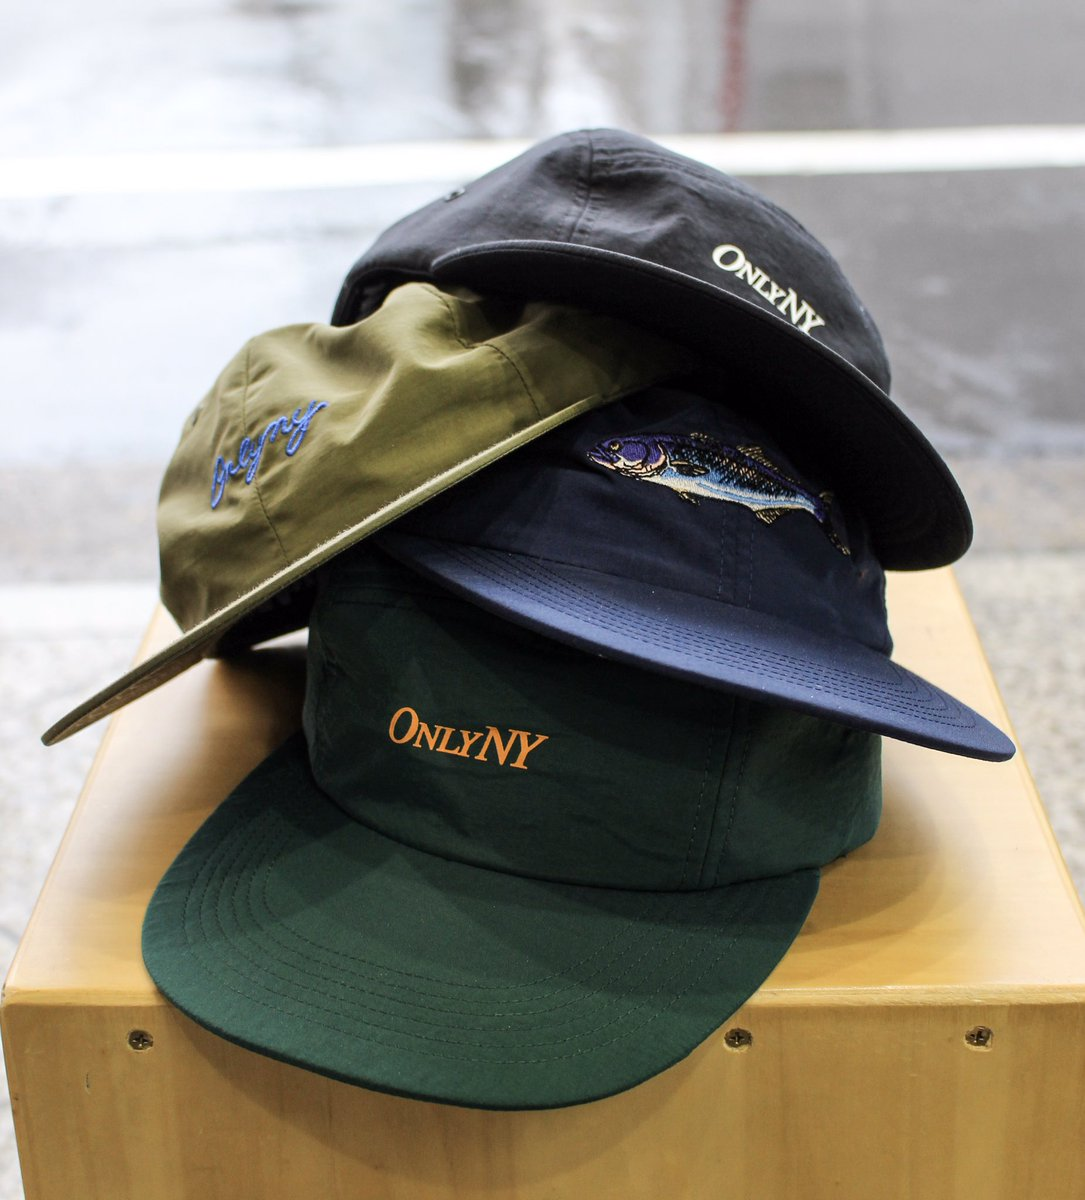 c0fe74fc58b14f ''ONLY NY'' Range 5-Panel [Pine/Black] Lodge Polo Hat [Olive] Bluefish Polo  Hat [Navy] 100% Lightweight nylon from Japan. #OnlyNY pic.twitter.com/zG8WSpazM5